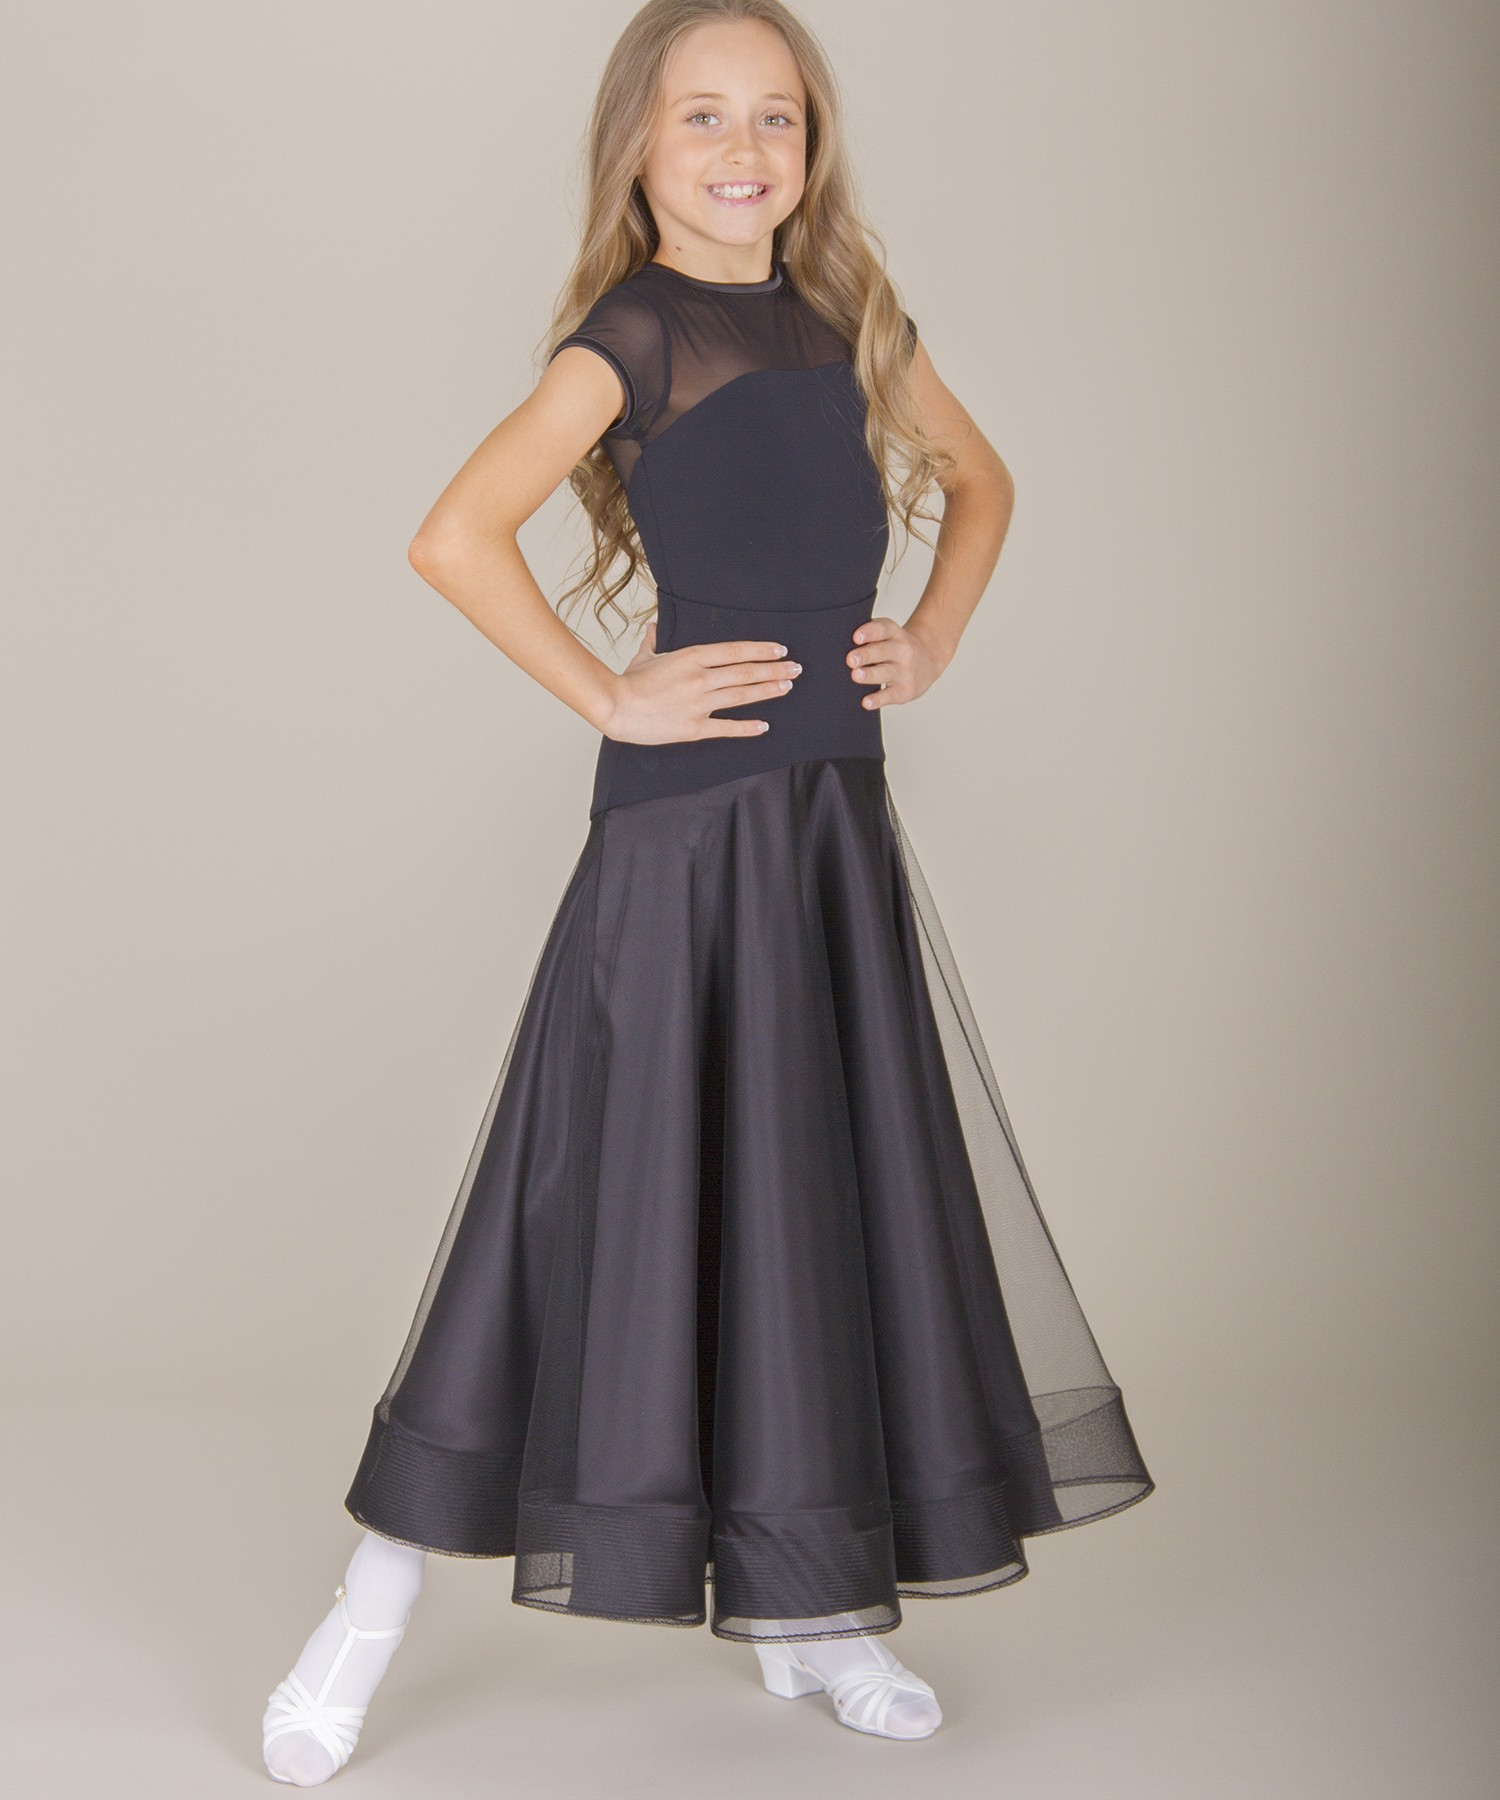 7df8fa9e36f95 Children's Skirts, DSI London, 3112 Hettie Juvenile Skirt, $265.00, from  VEdance, the very best in ballroom and Latin dance shoes and dancewear.